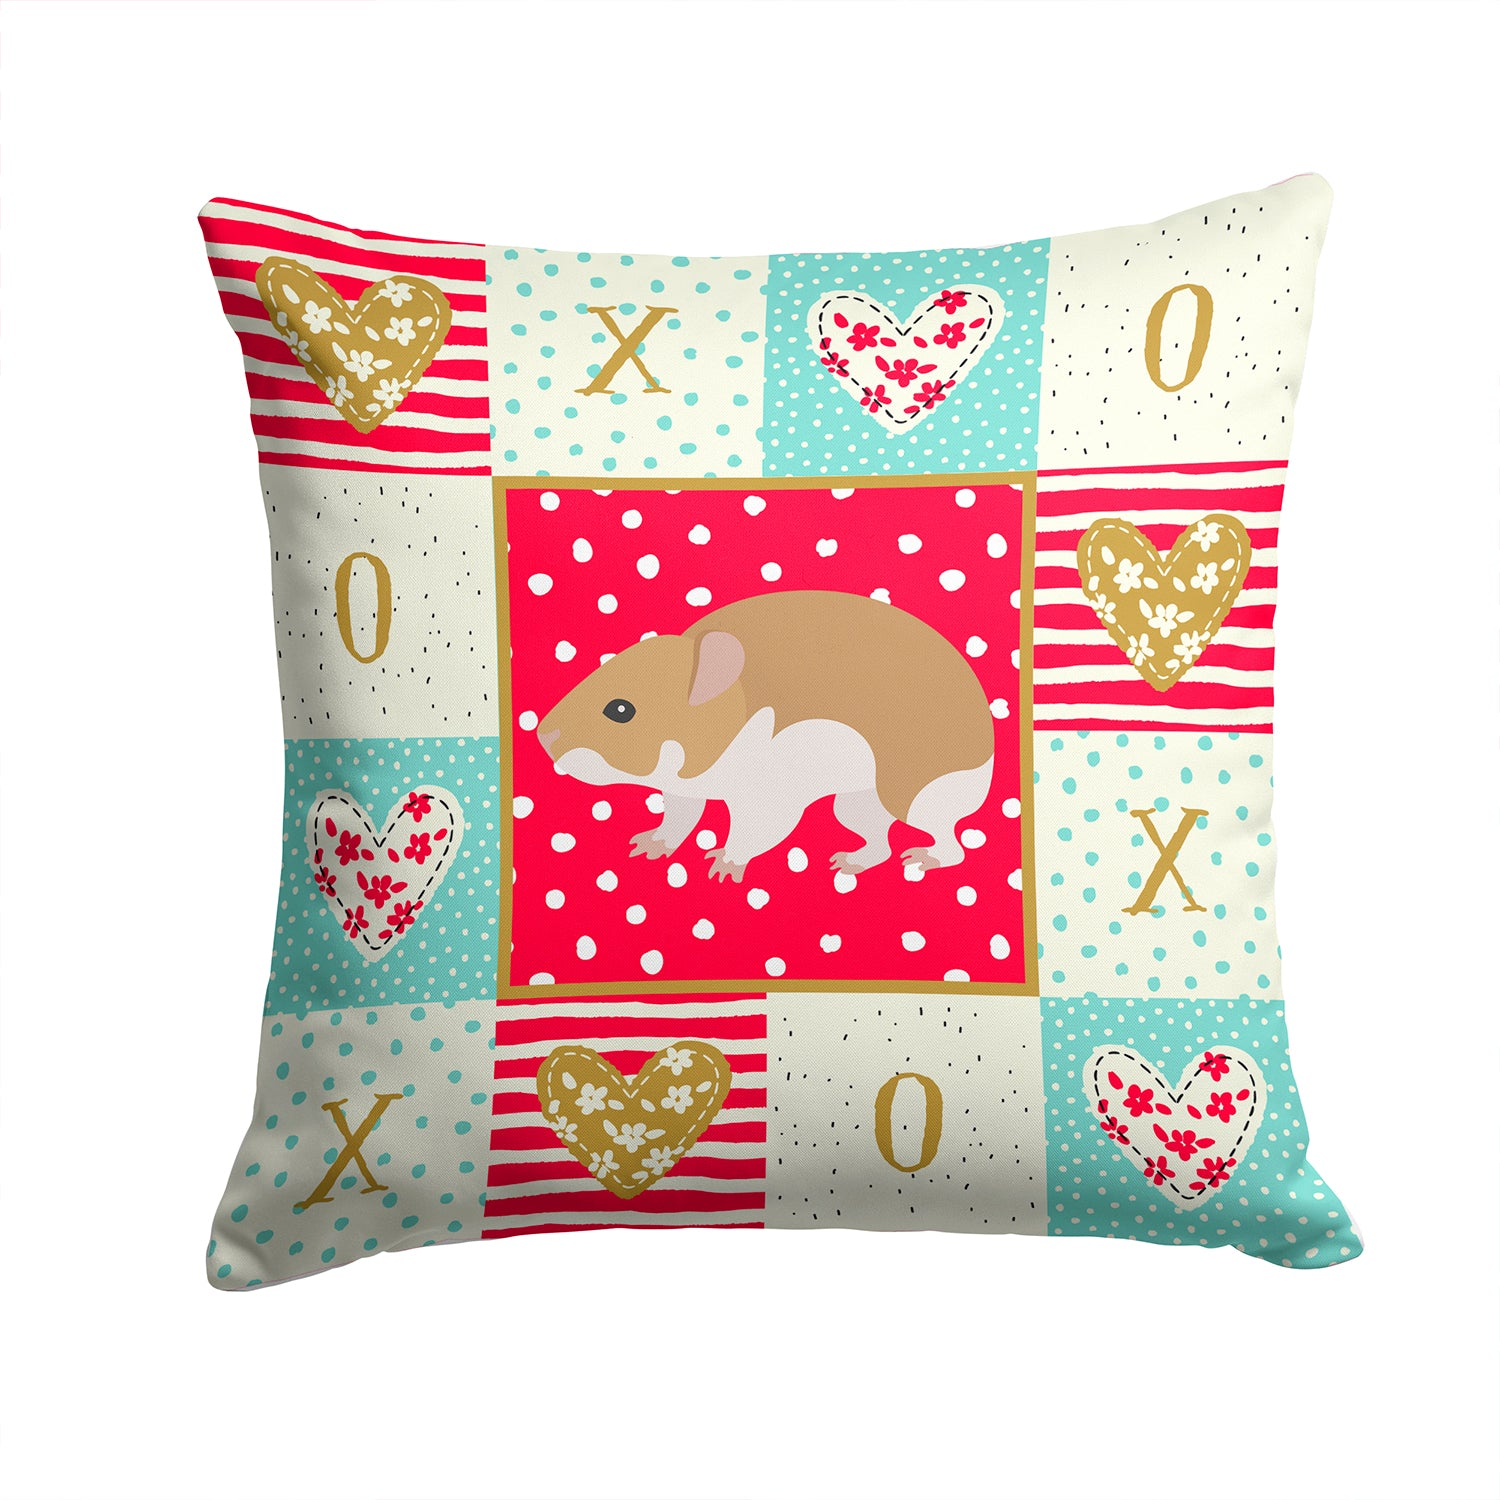 Turkish Hamster Love Fabric Decorative Pillow CK5445PW1414 by Caroline's Treasures